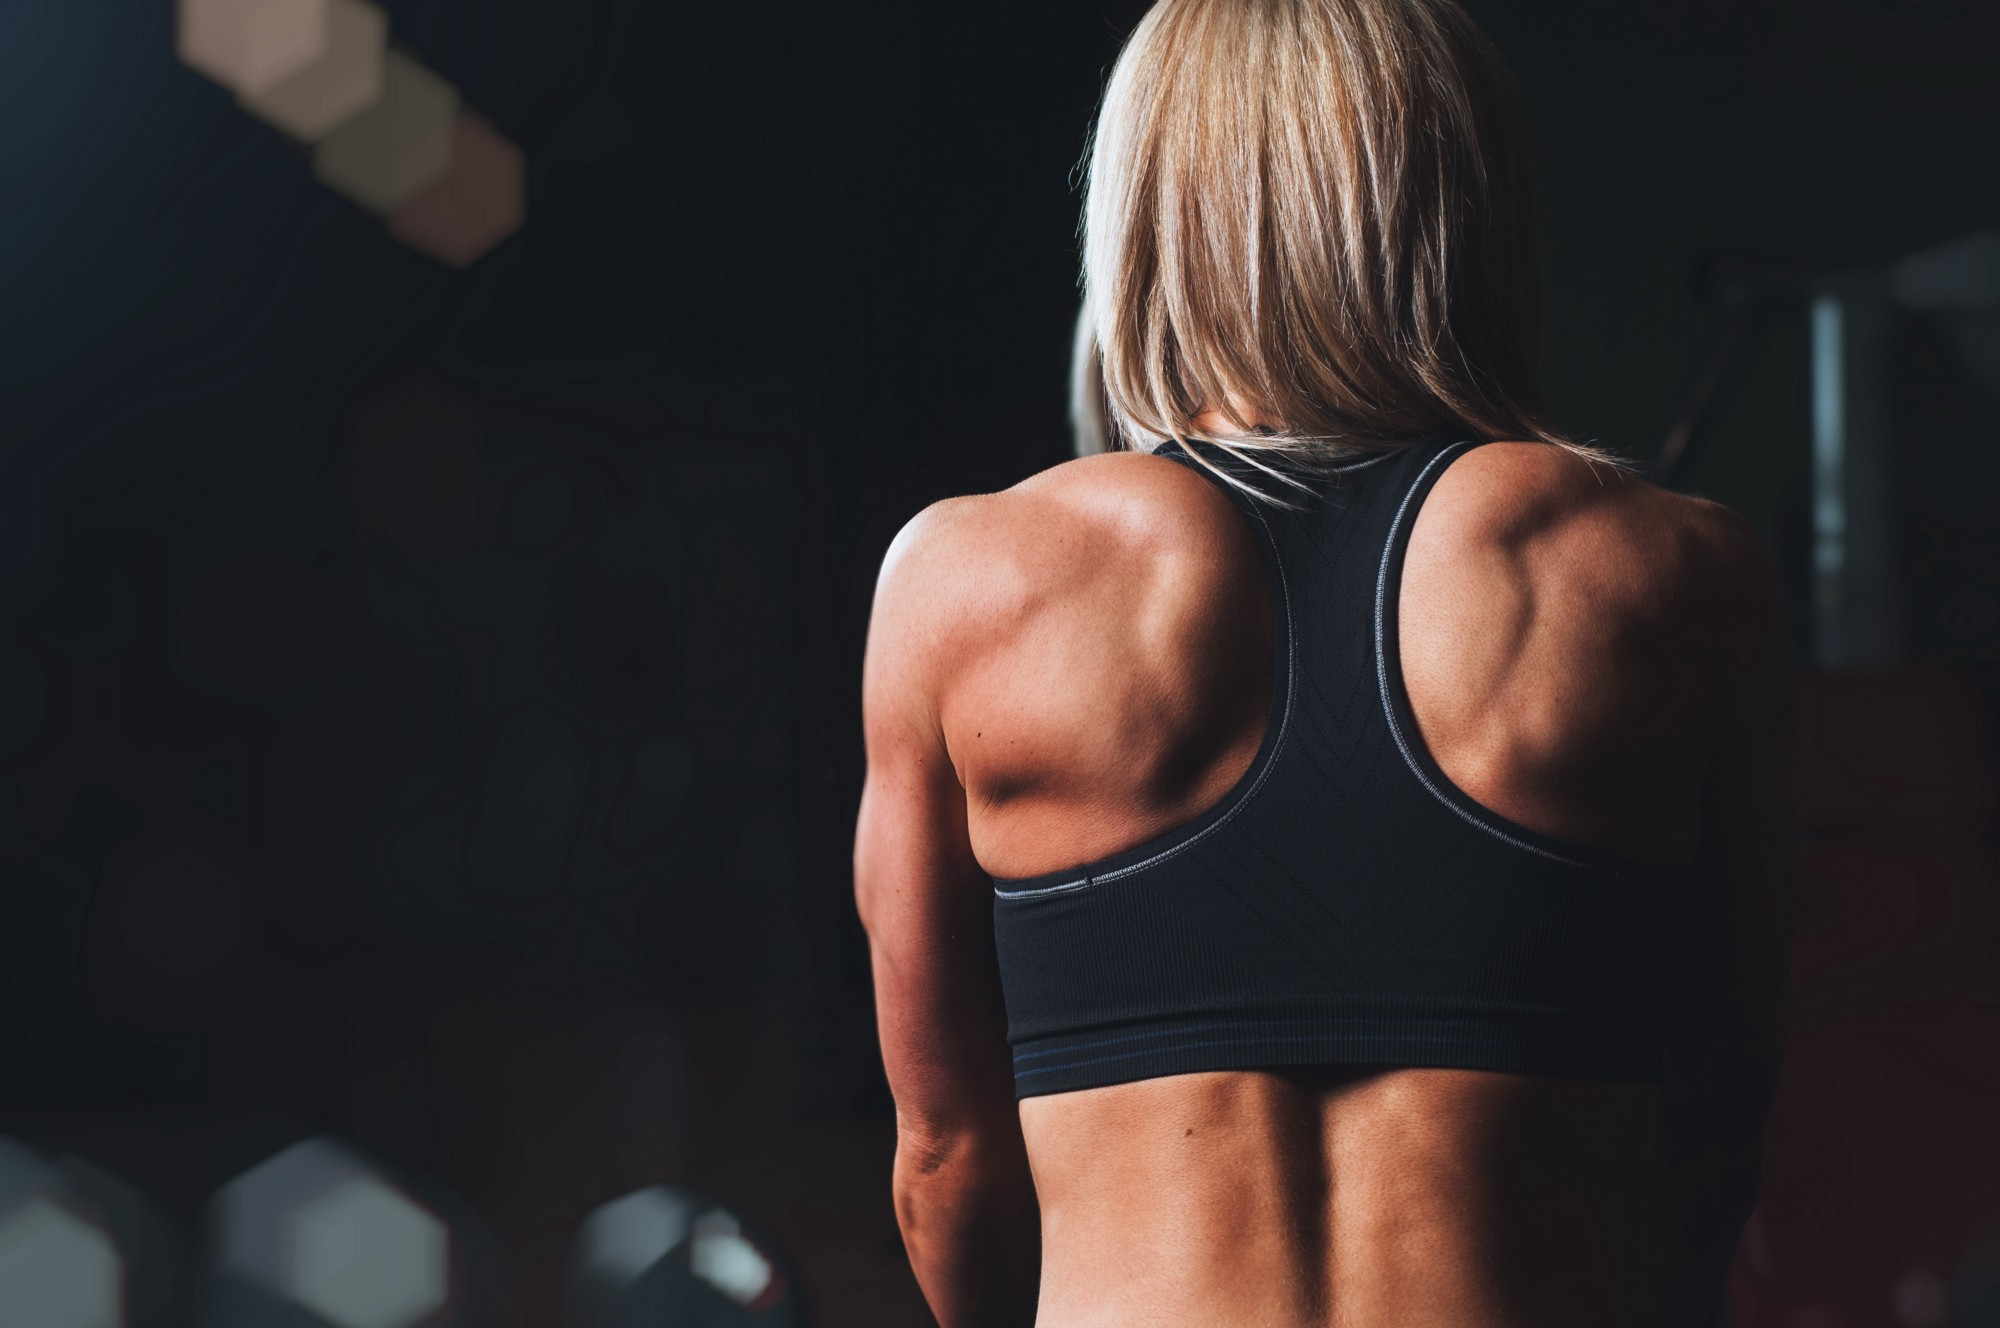 A woman with a strong back